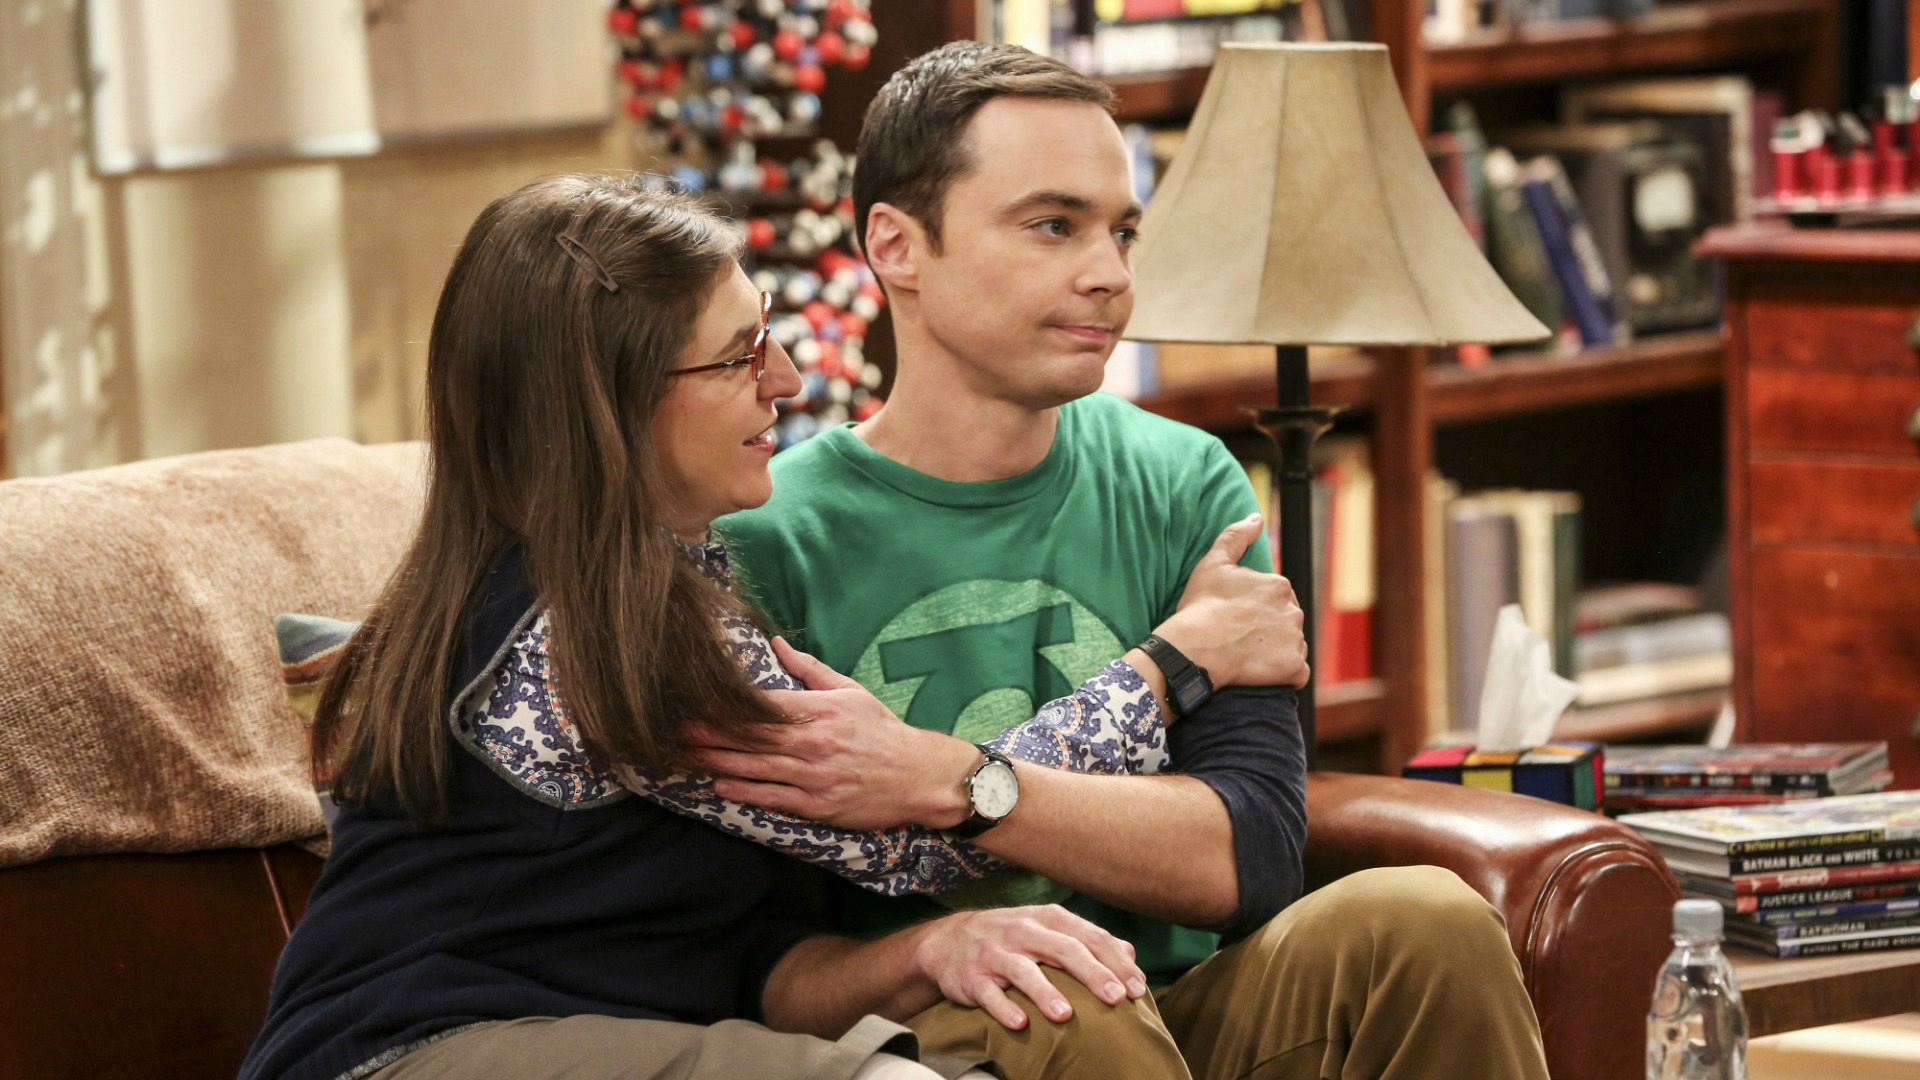 We're anxious to see how Amy and Sheldon handle their new living situation on The Big Bang Theory.